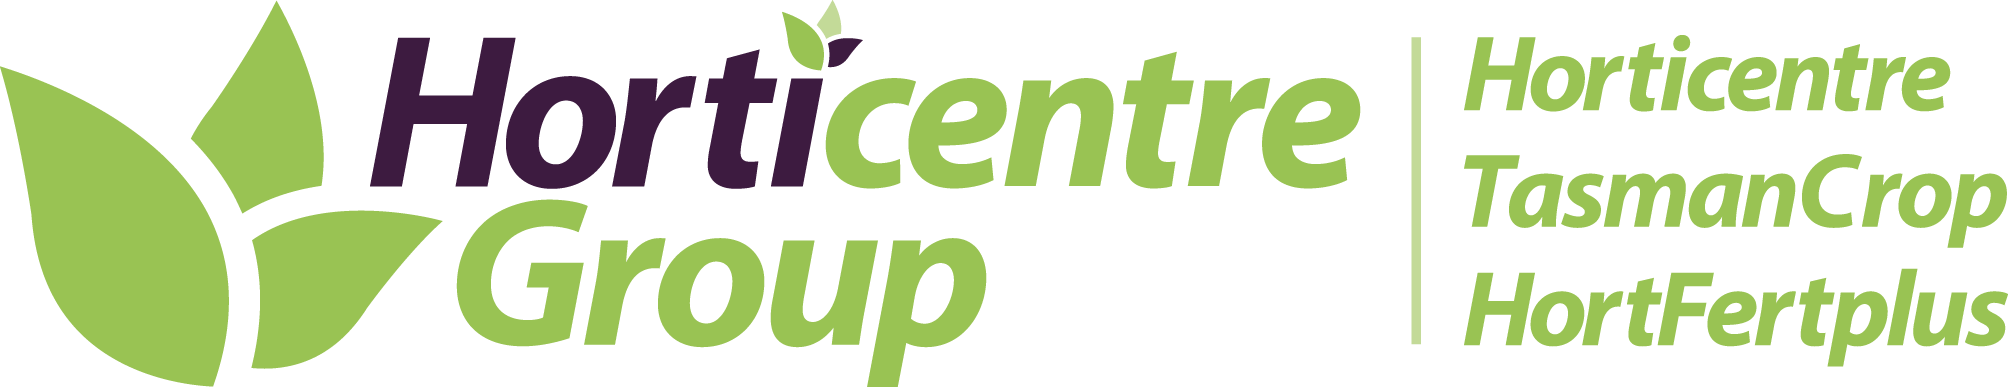 Horticentre Group logo-1